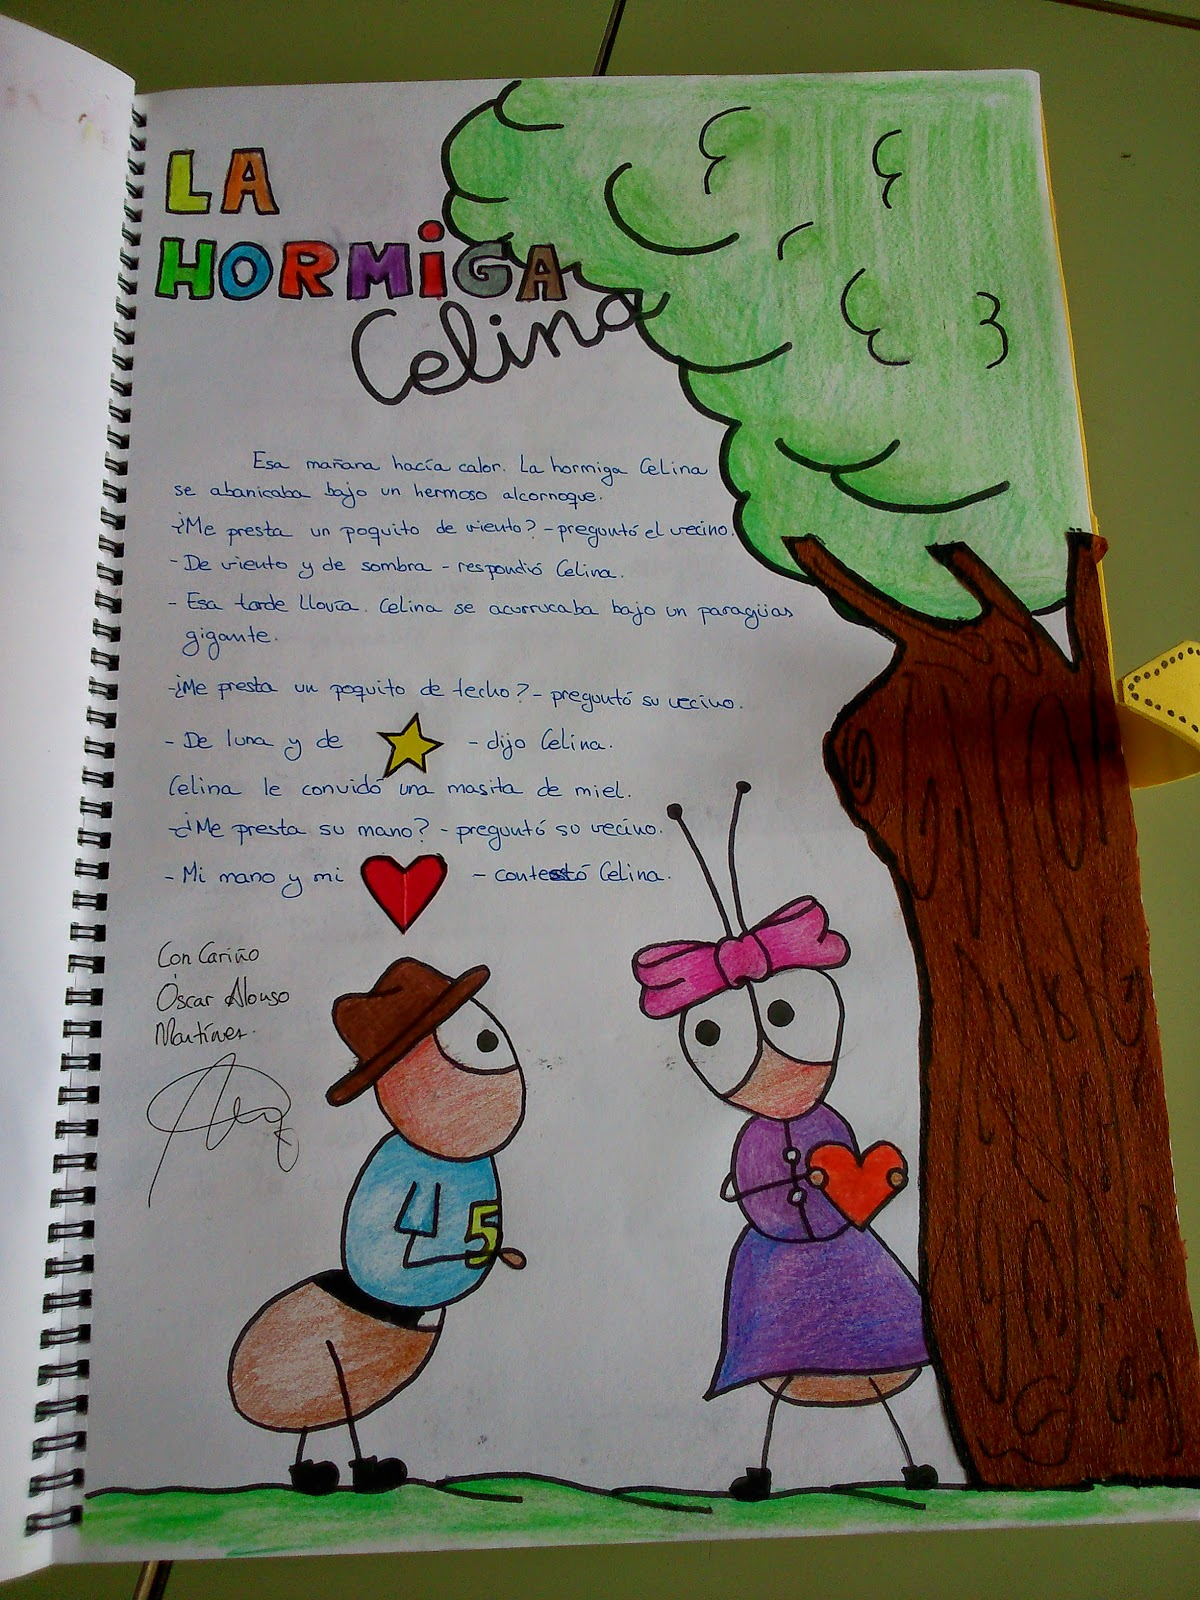 Club de ideas libro viajero la eduteca for Cancion jardin de rosas en ingles